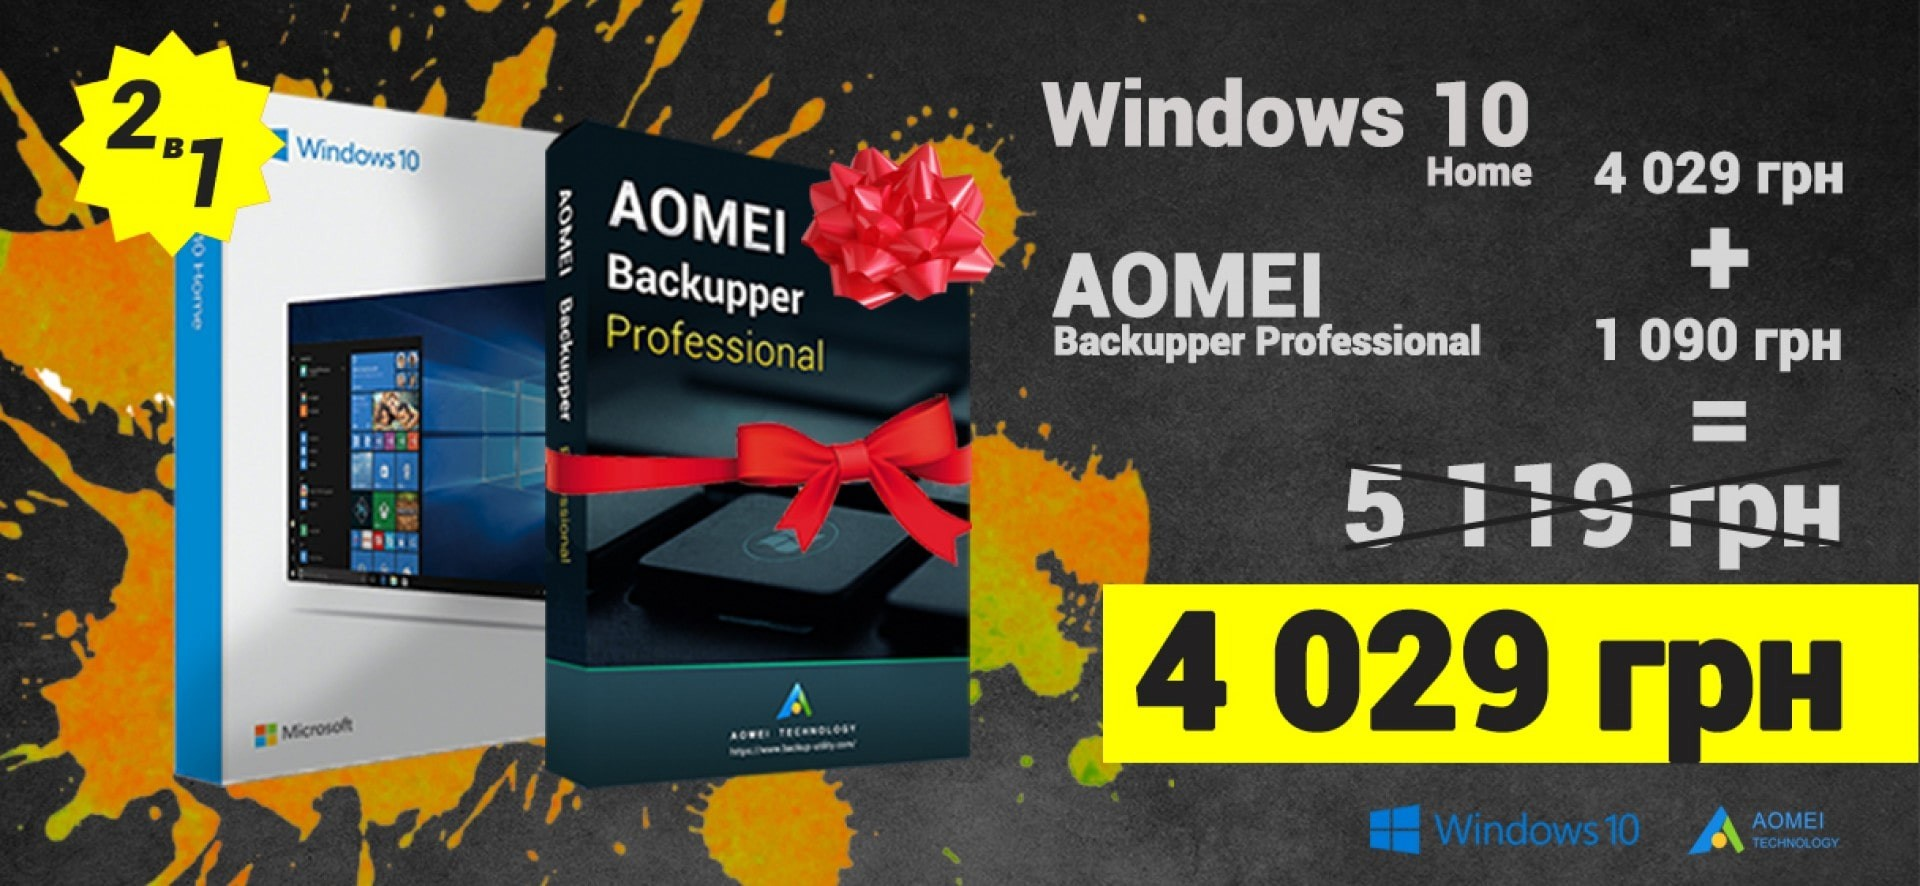 Акция: Windows 10 Home + AOMEI Backupper Pro